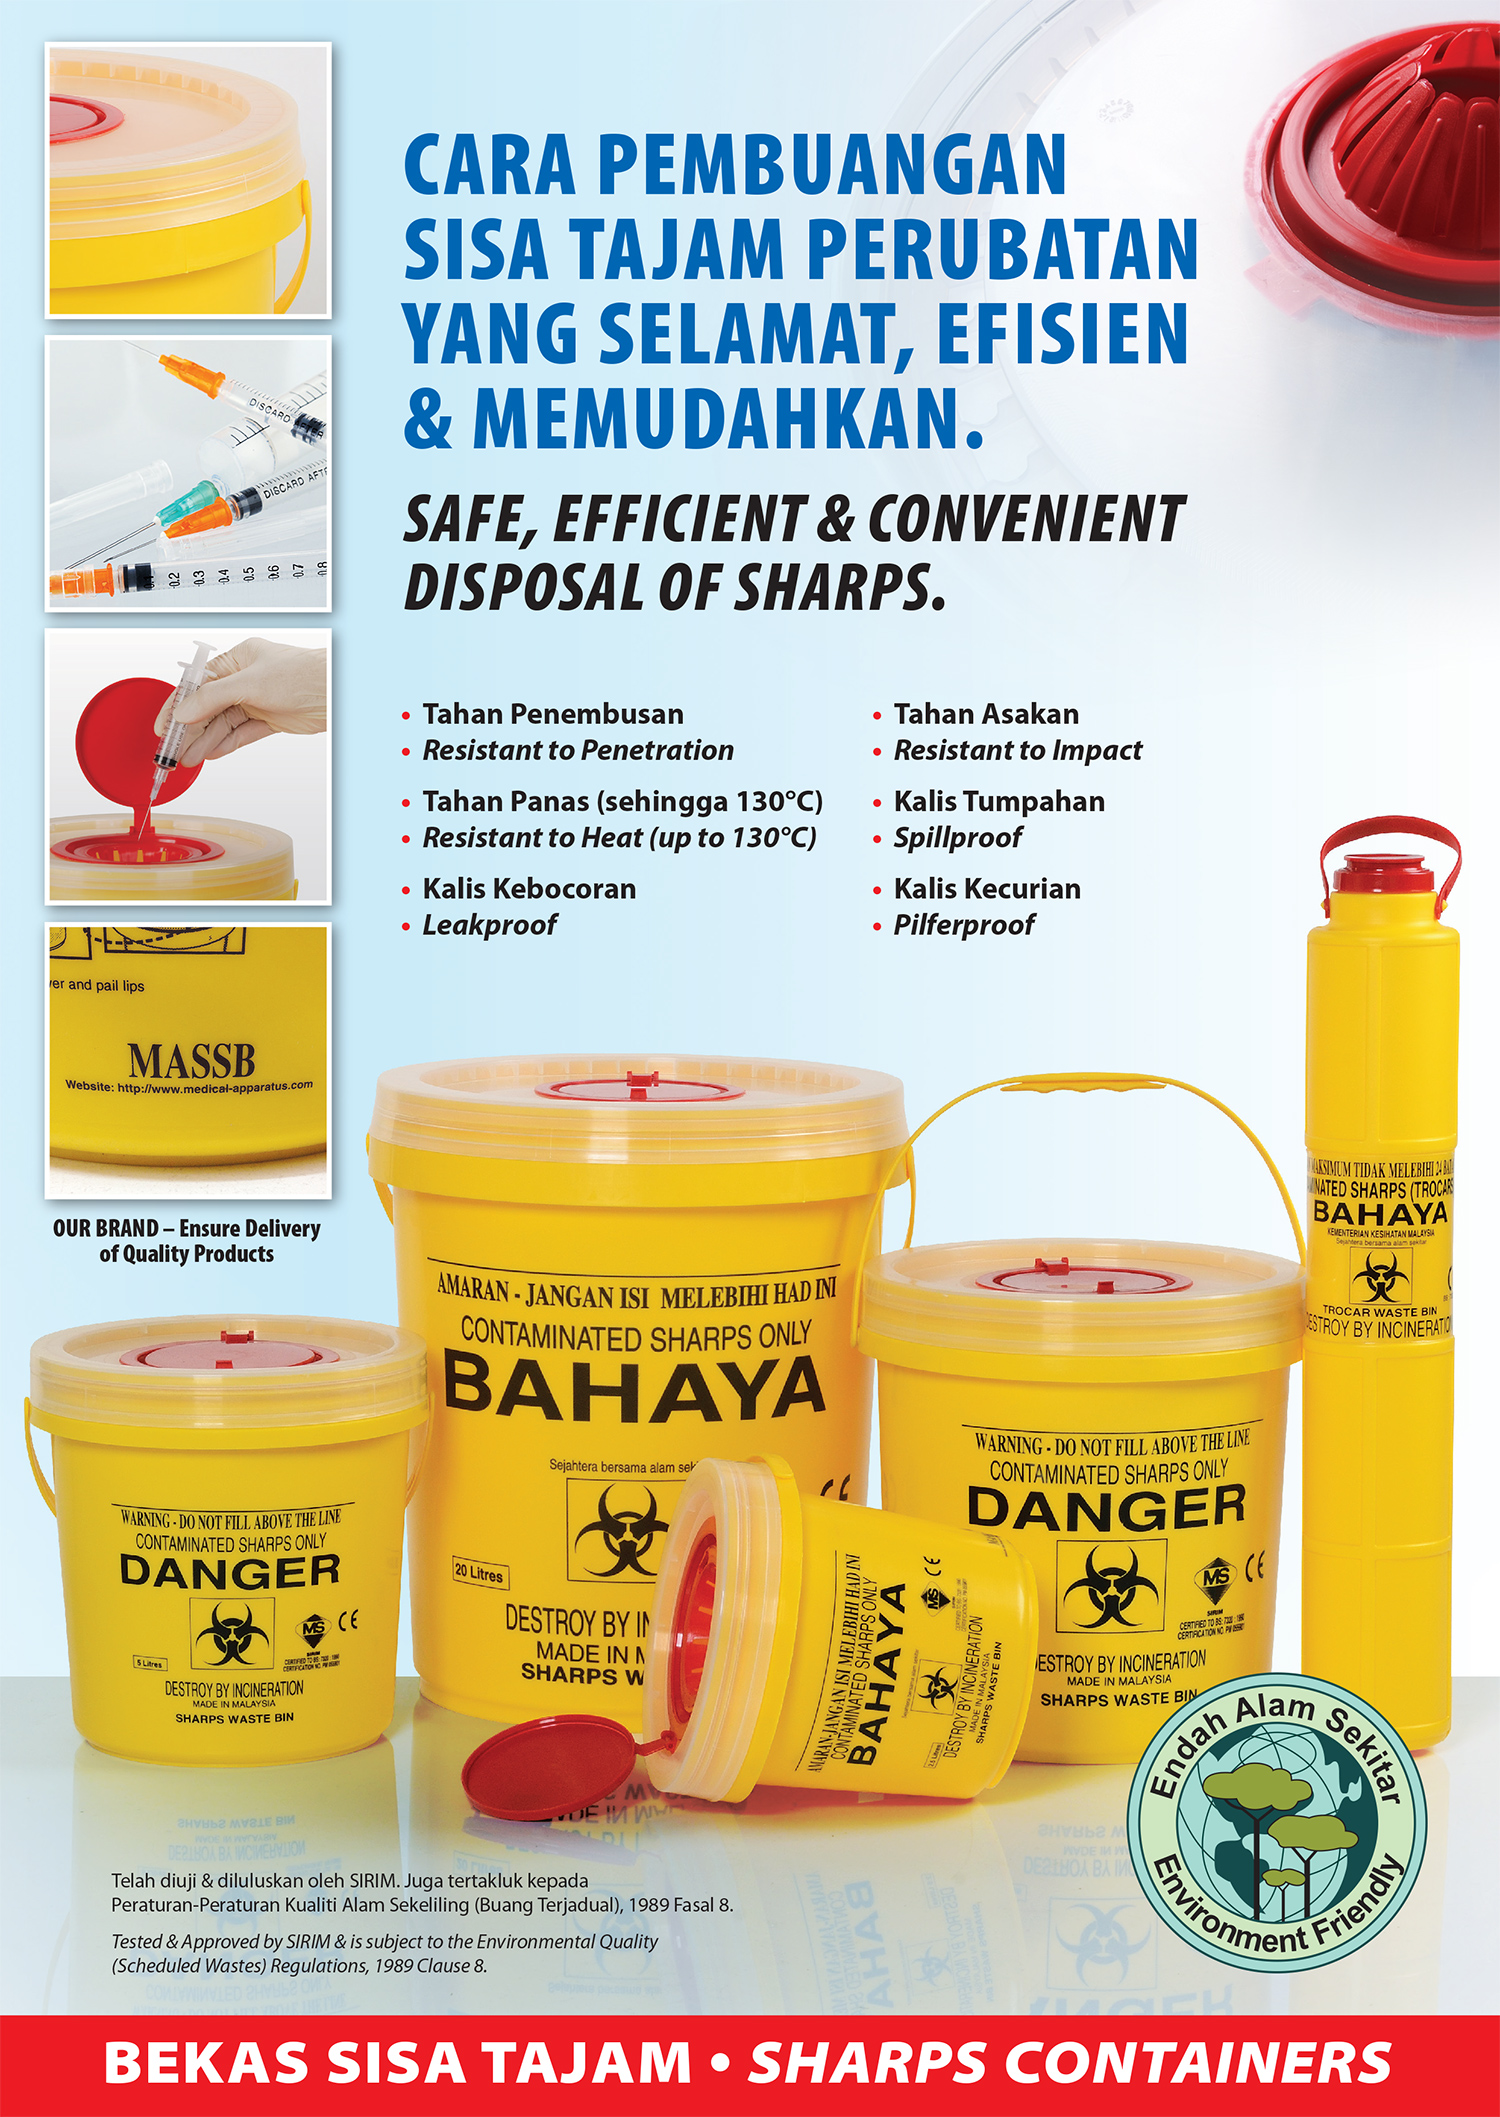 Disposal of Sharps